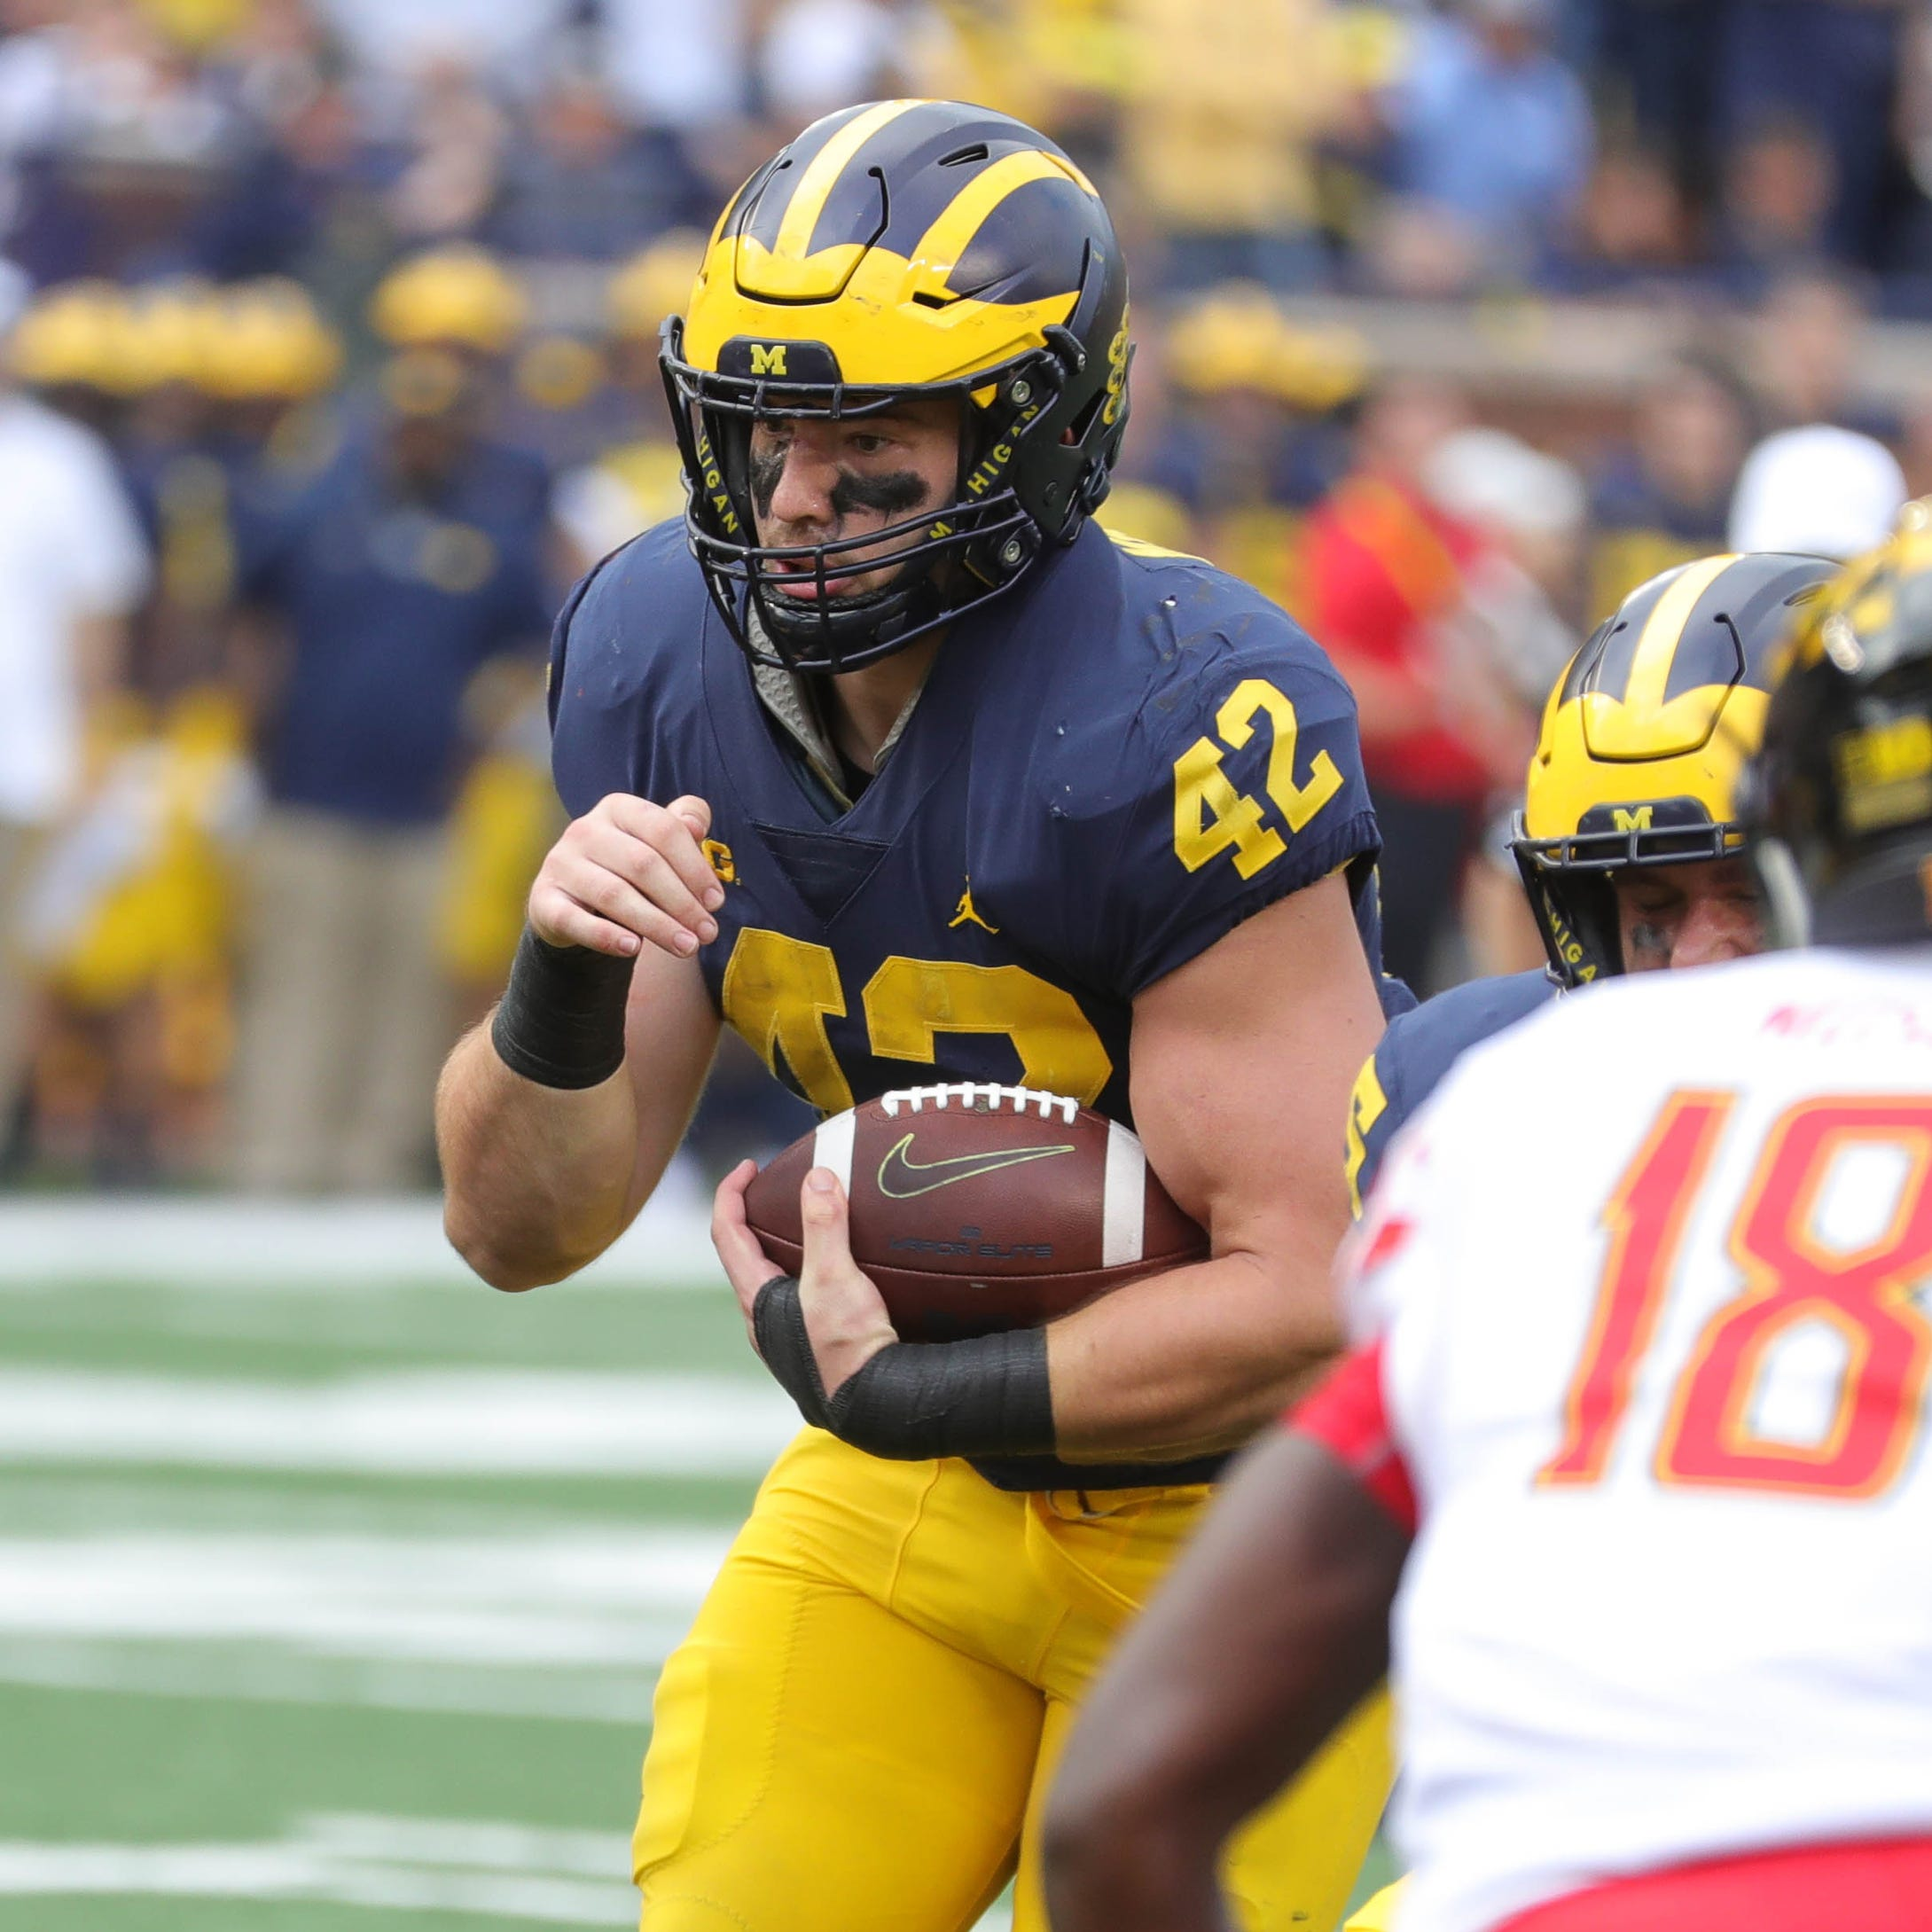 Michigan football: Teammates confident in Ben Mason, wherever he plays